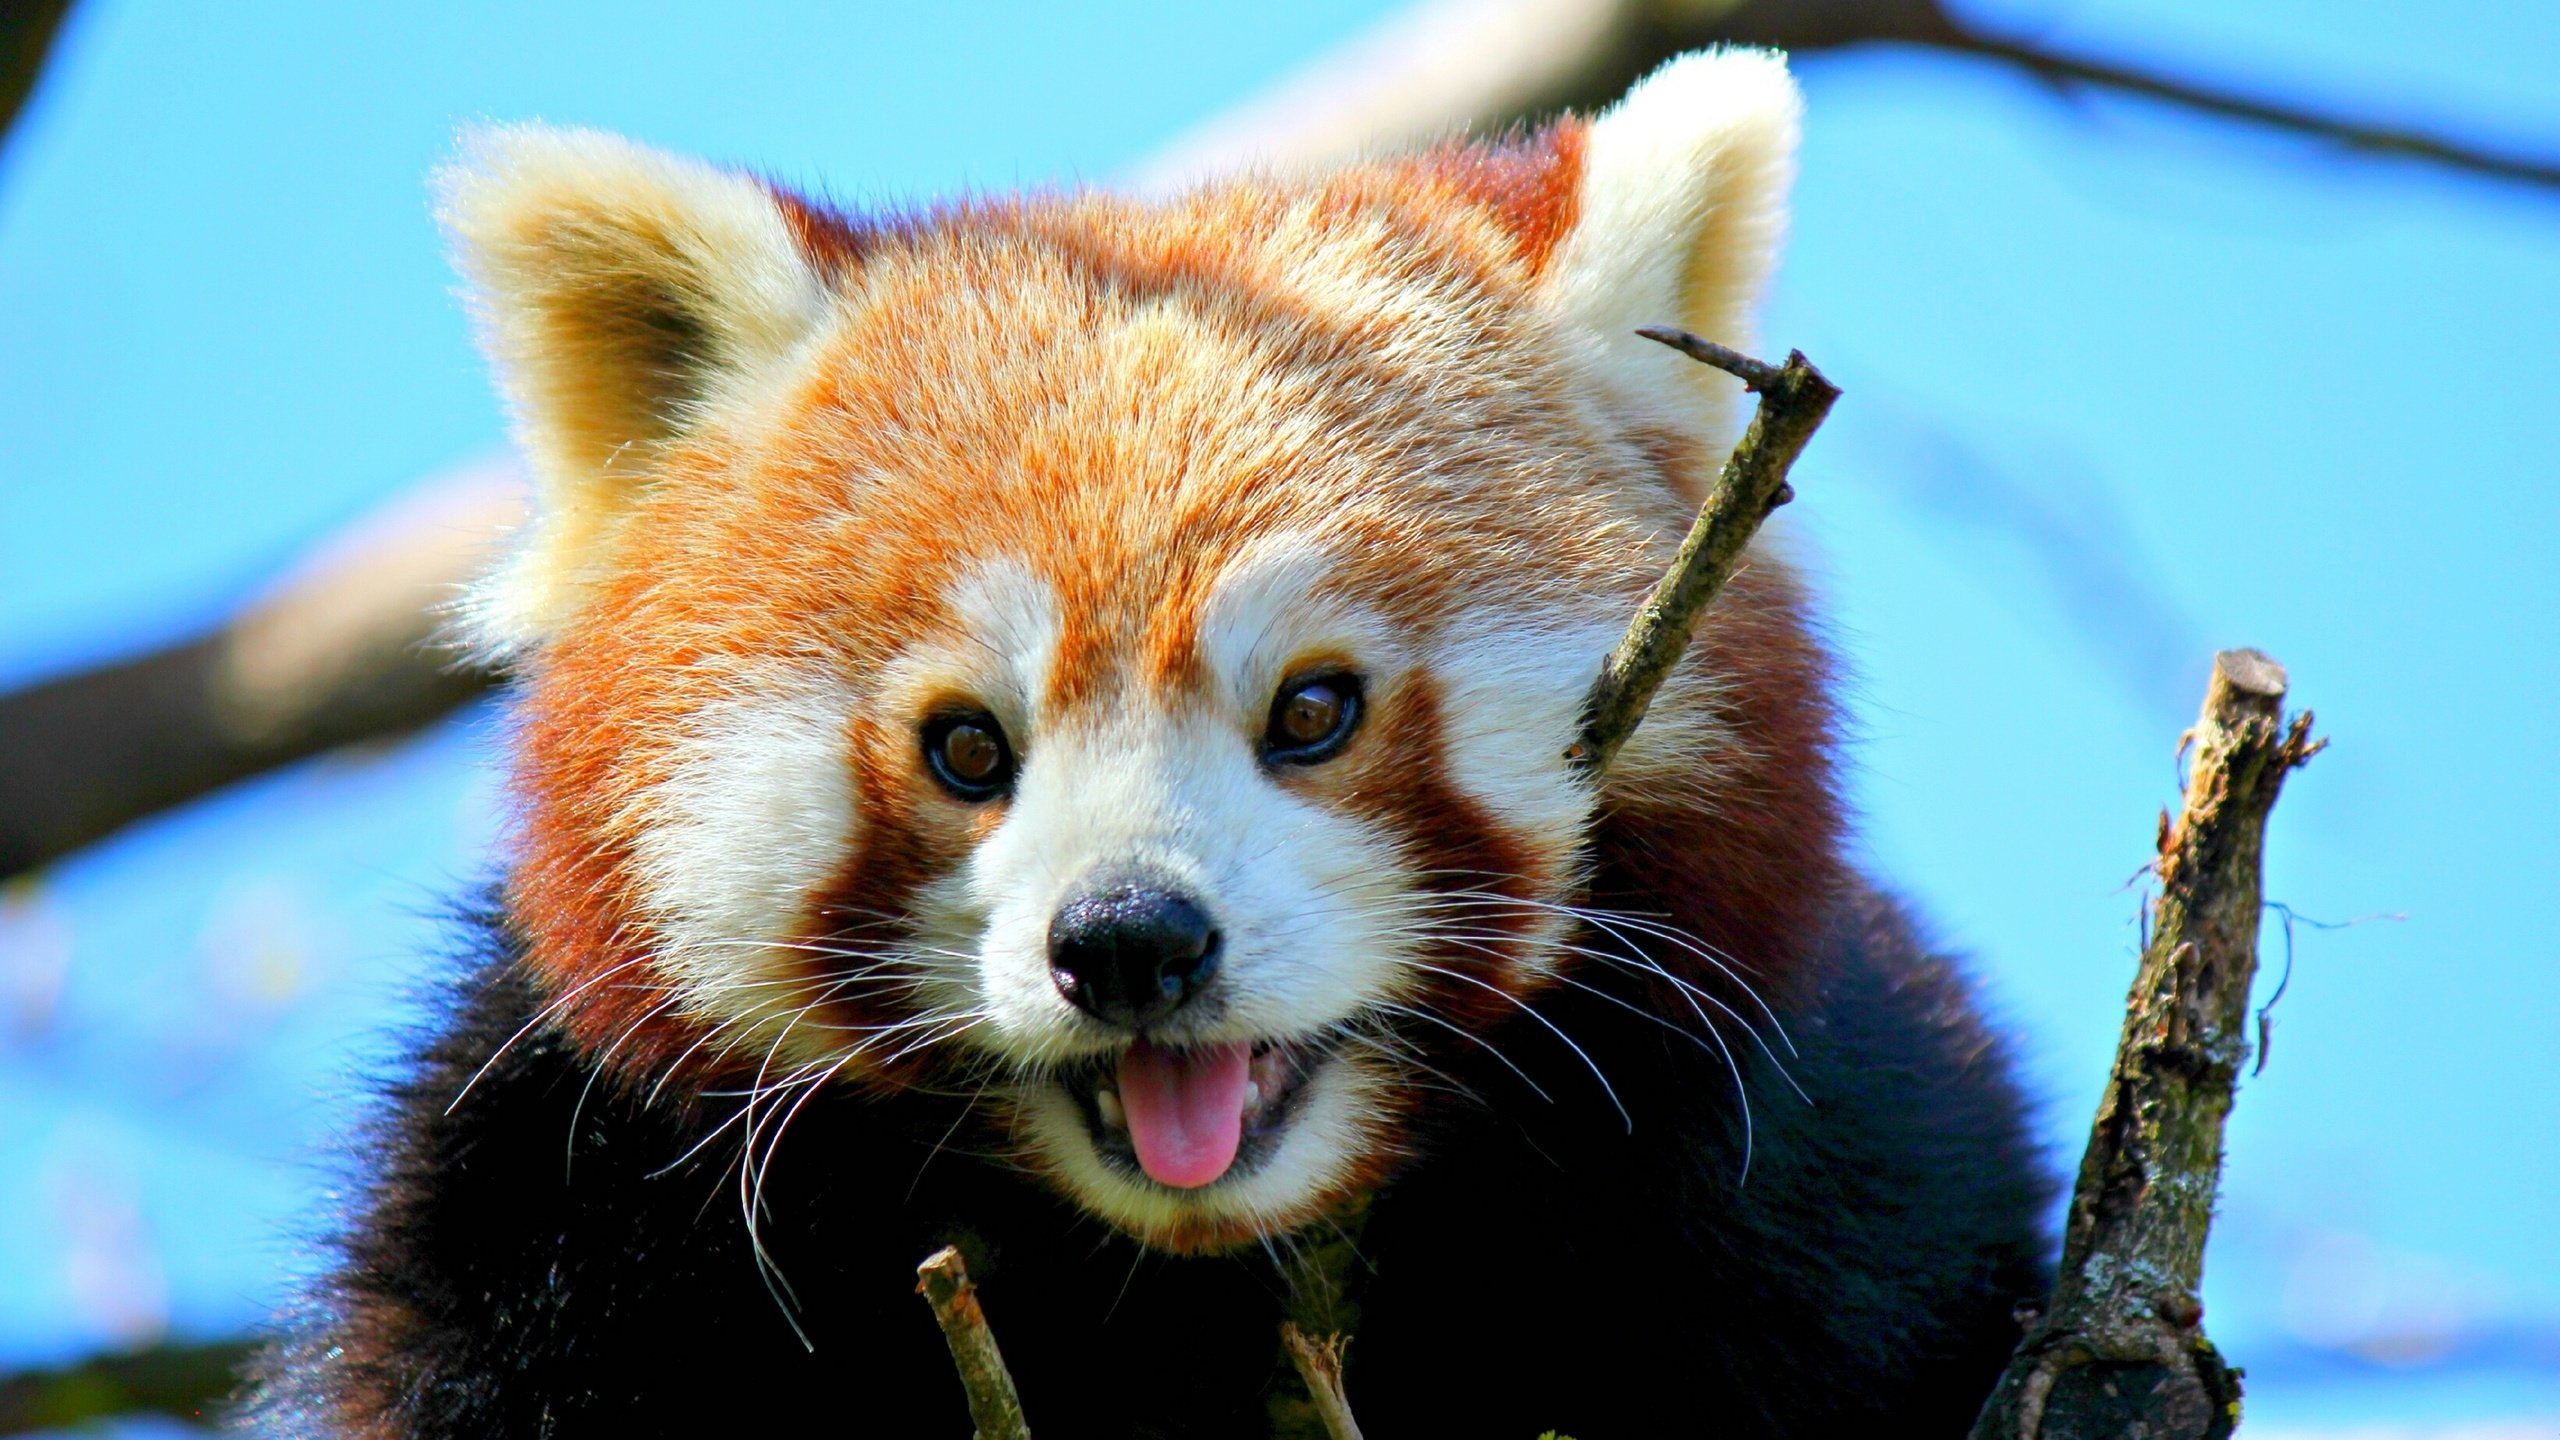 Free Red Panda high quality background ID:64048 for hd 2560x1440 desktop